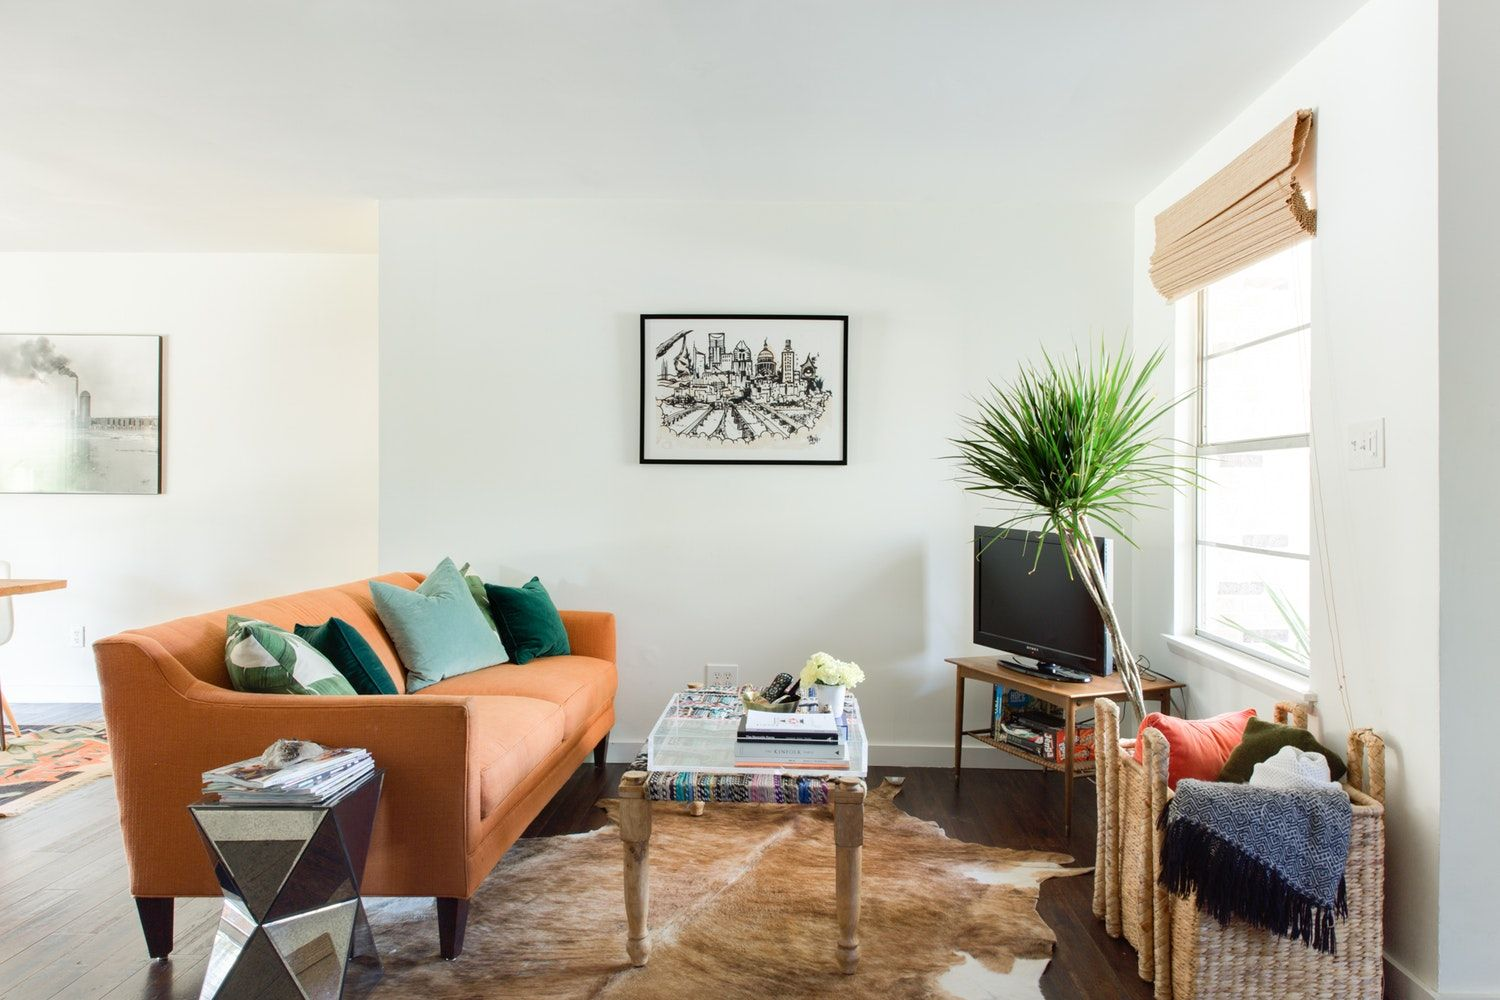 An Easy 5 Minute Upgrade For Lazy Home Improvers And Renters